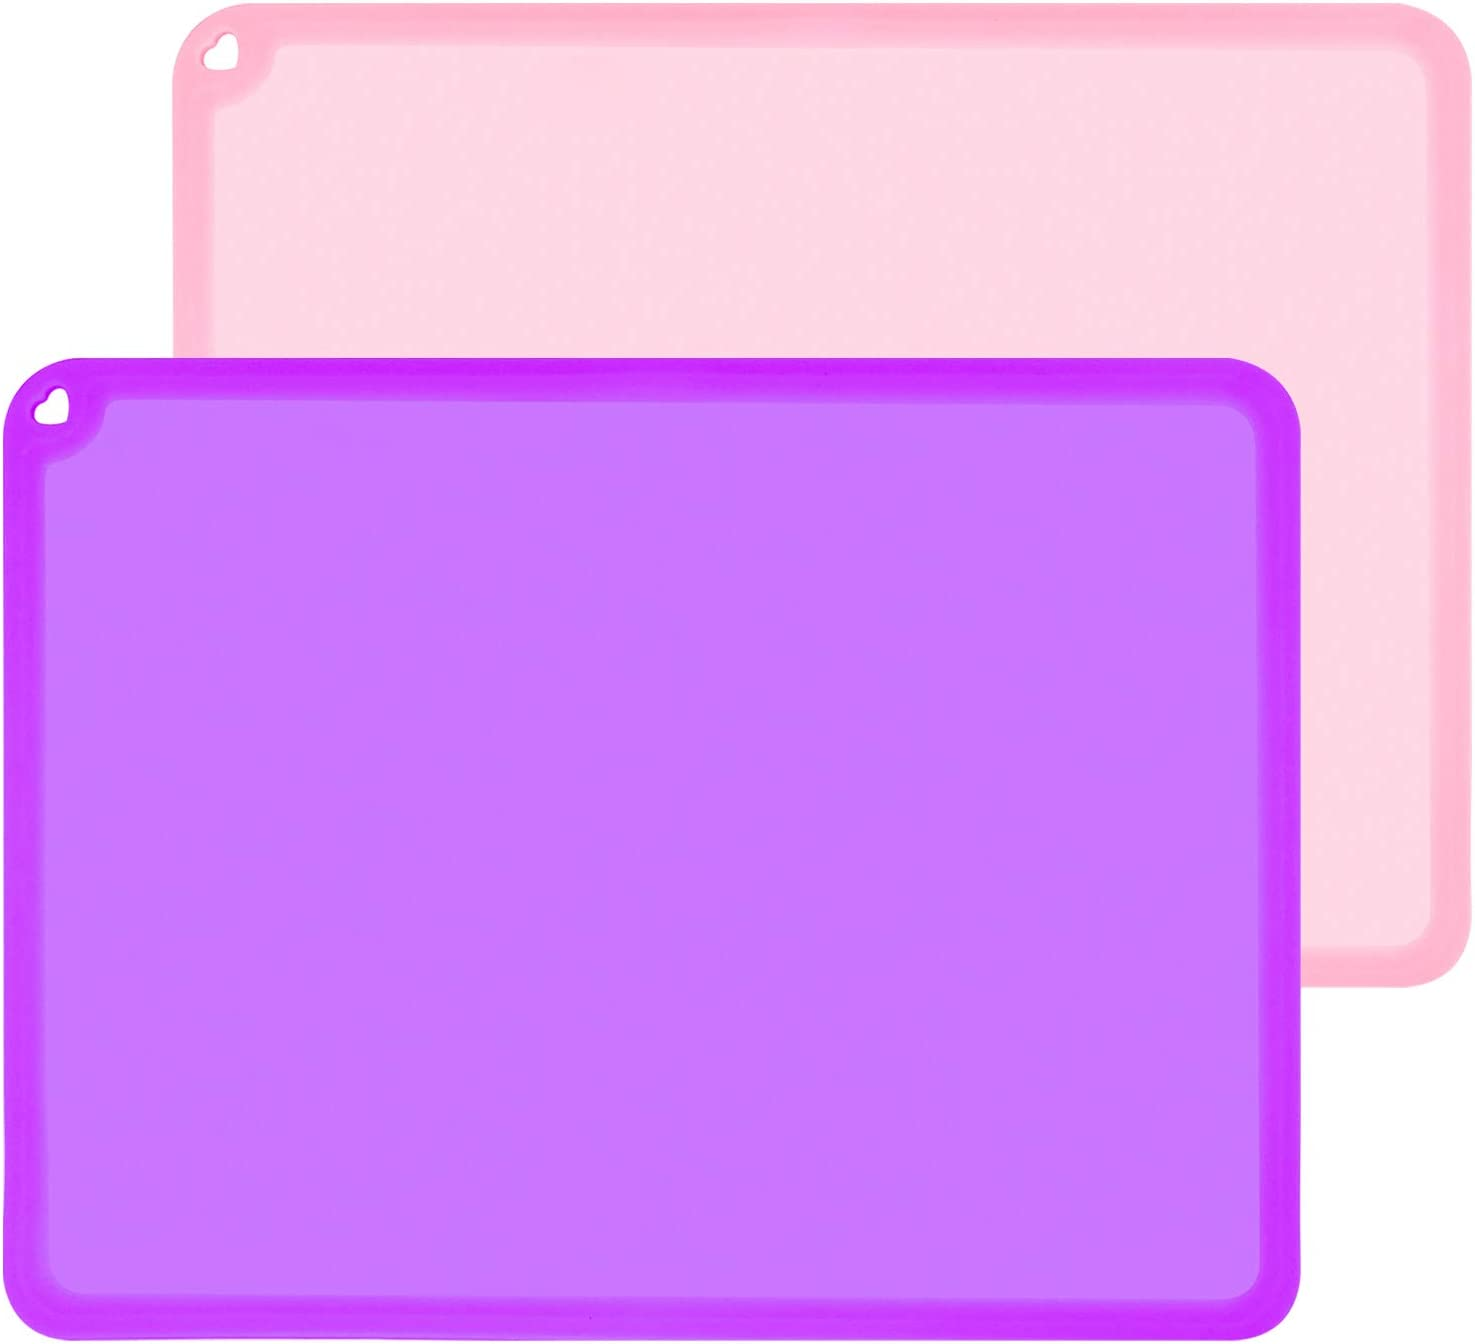 Silicone Placemats for Kids, Baby Placemats for Toddler Children Reusable Non-Slip Large Silicone Sheets for Crafts Resin Jewelry Casting Table Mats, 2 Pack, Purple/Baby Pink